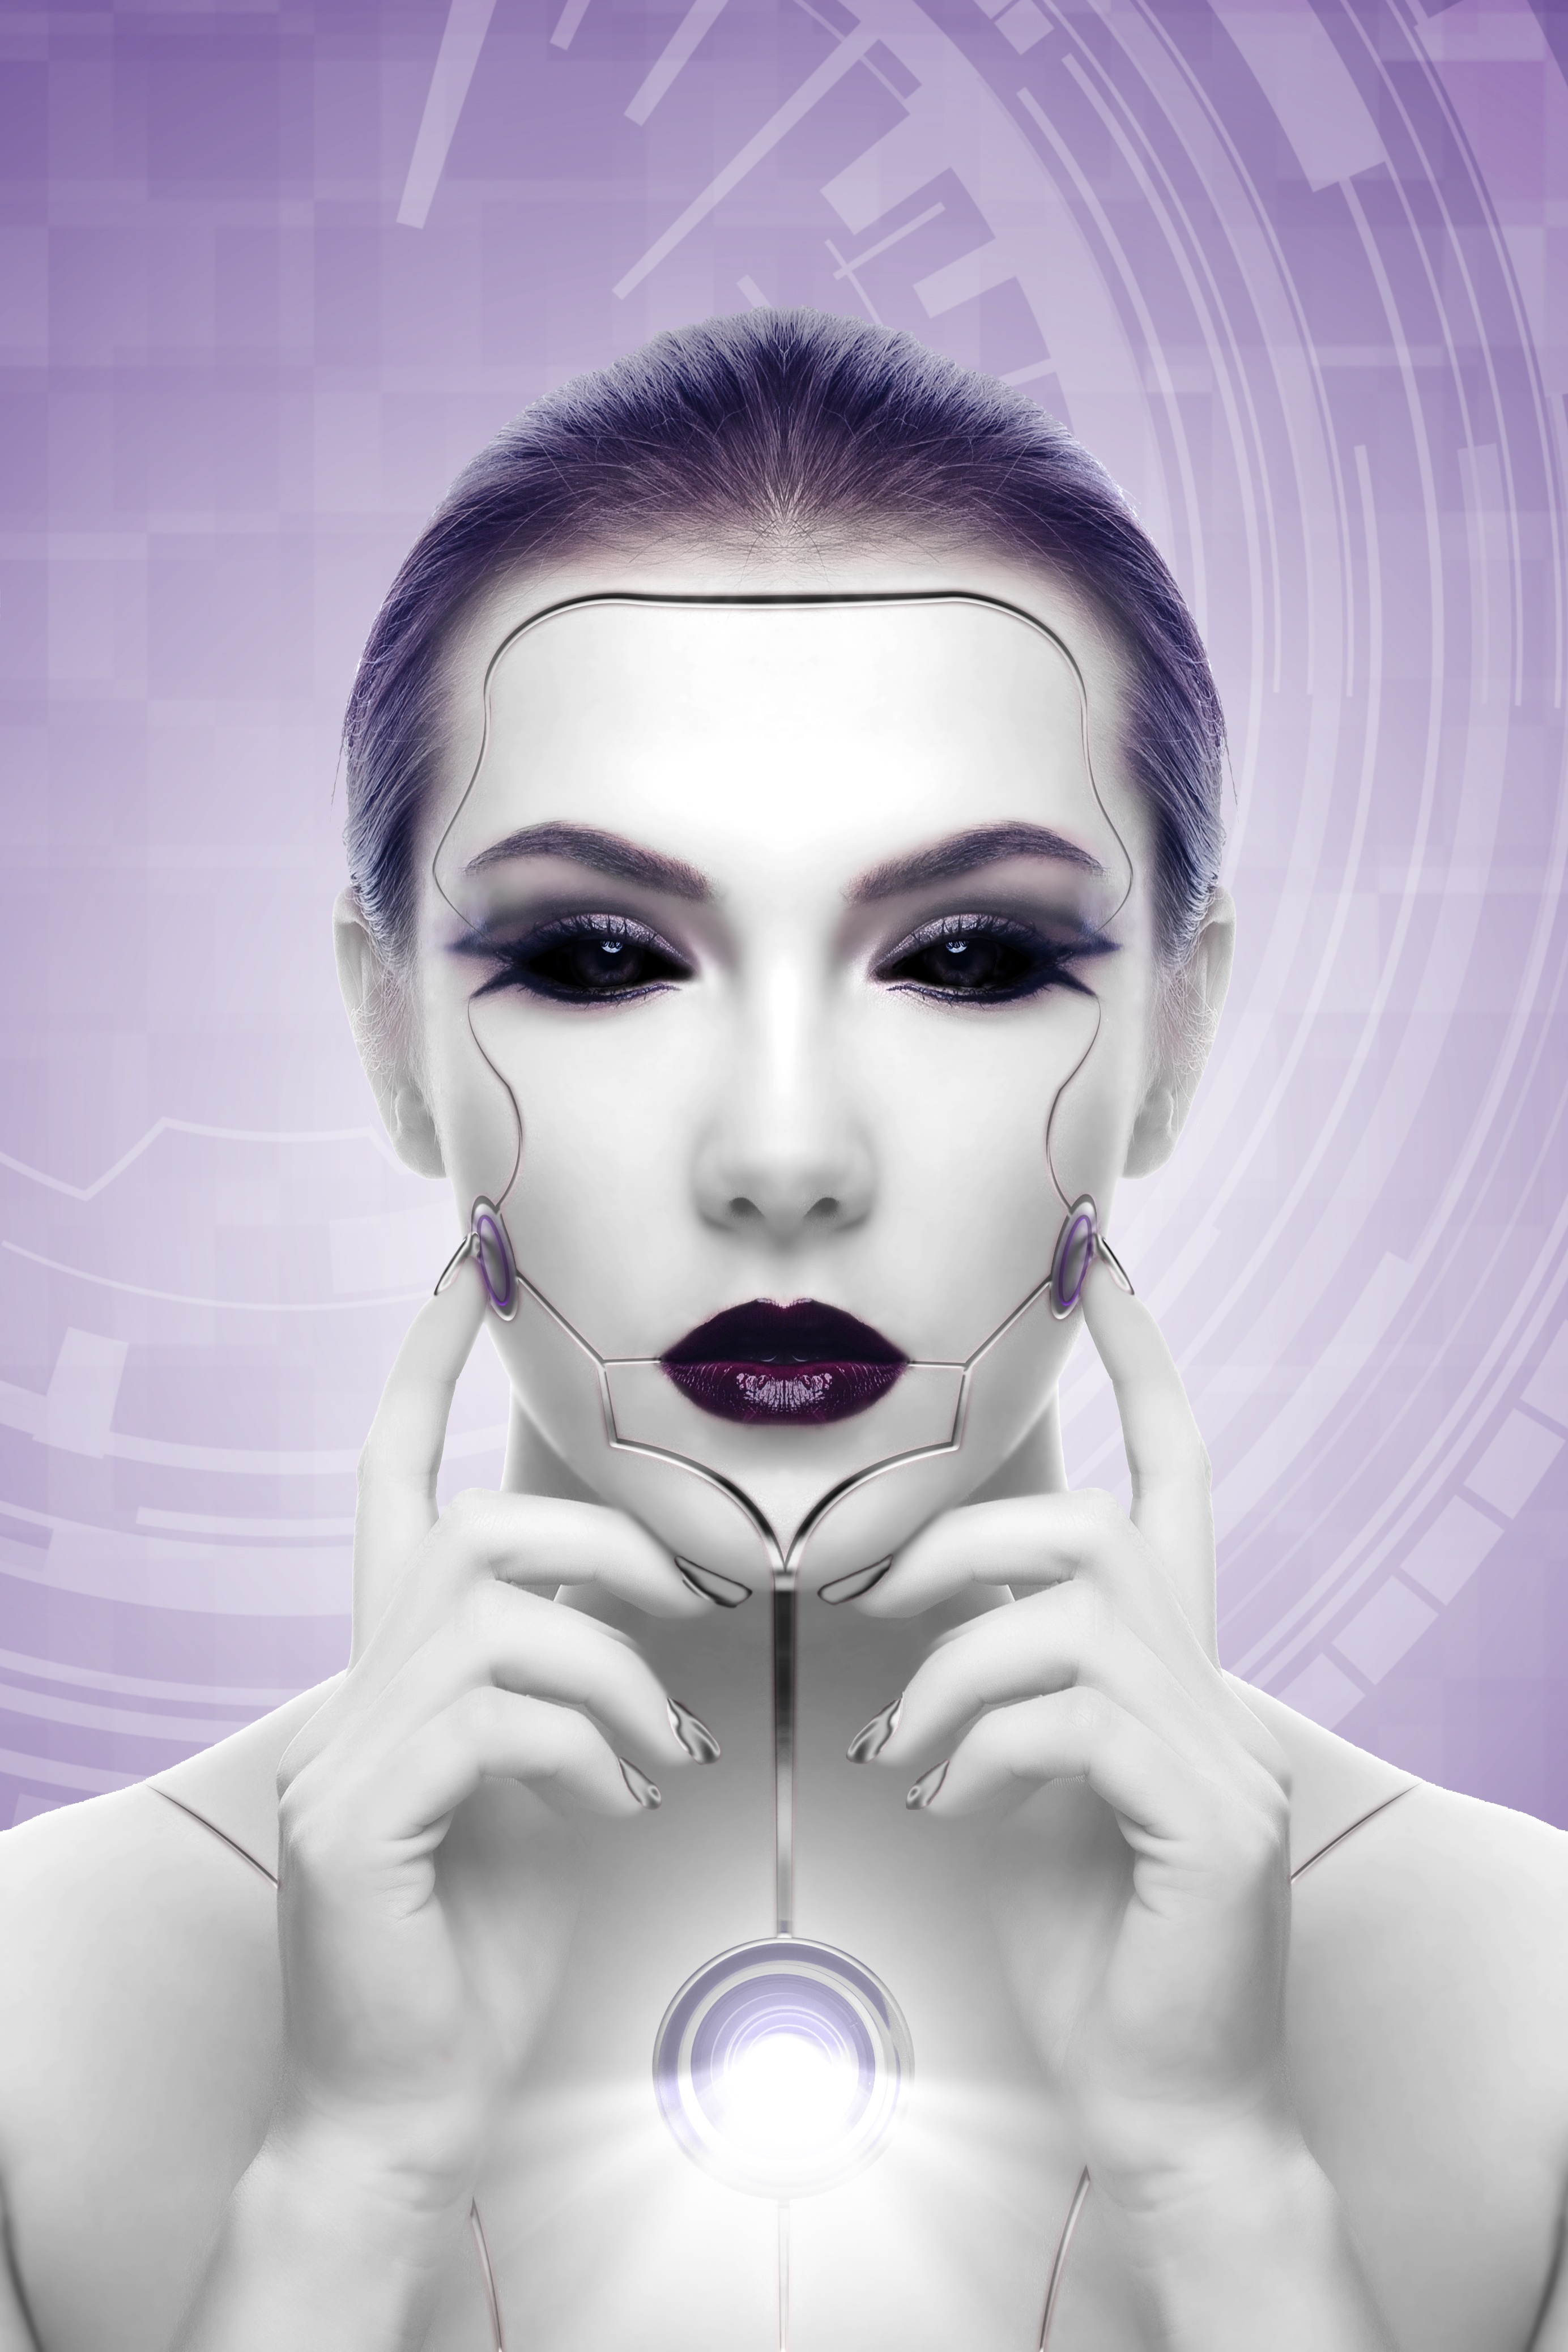 114924 Screensavers and Wallpapers Robot for phone. Download 3D, Futurism, Girl, Robot, Cyborg, Face pictures for free